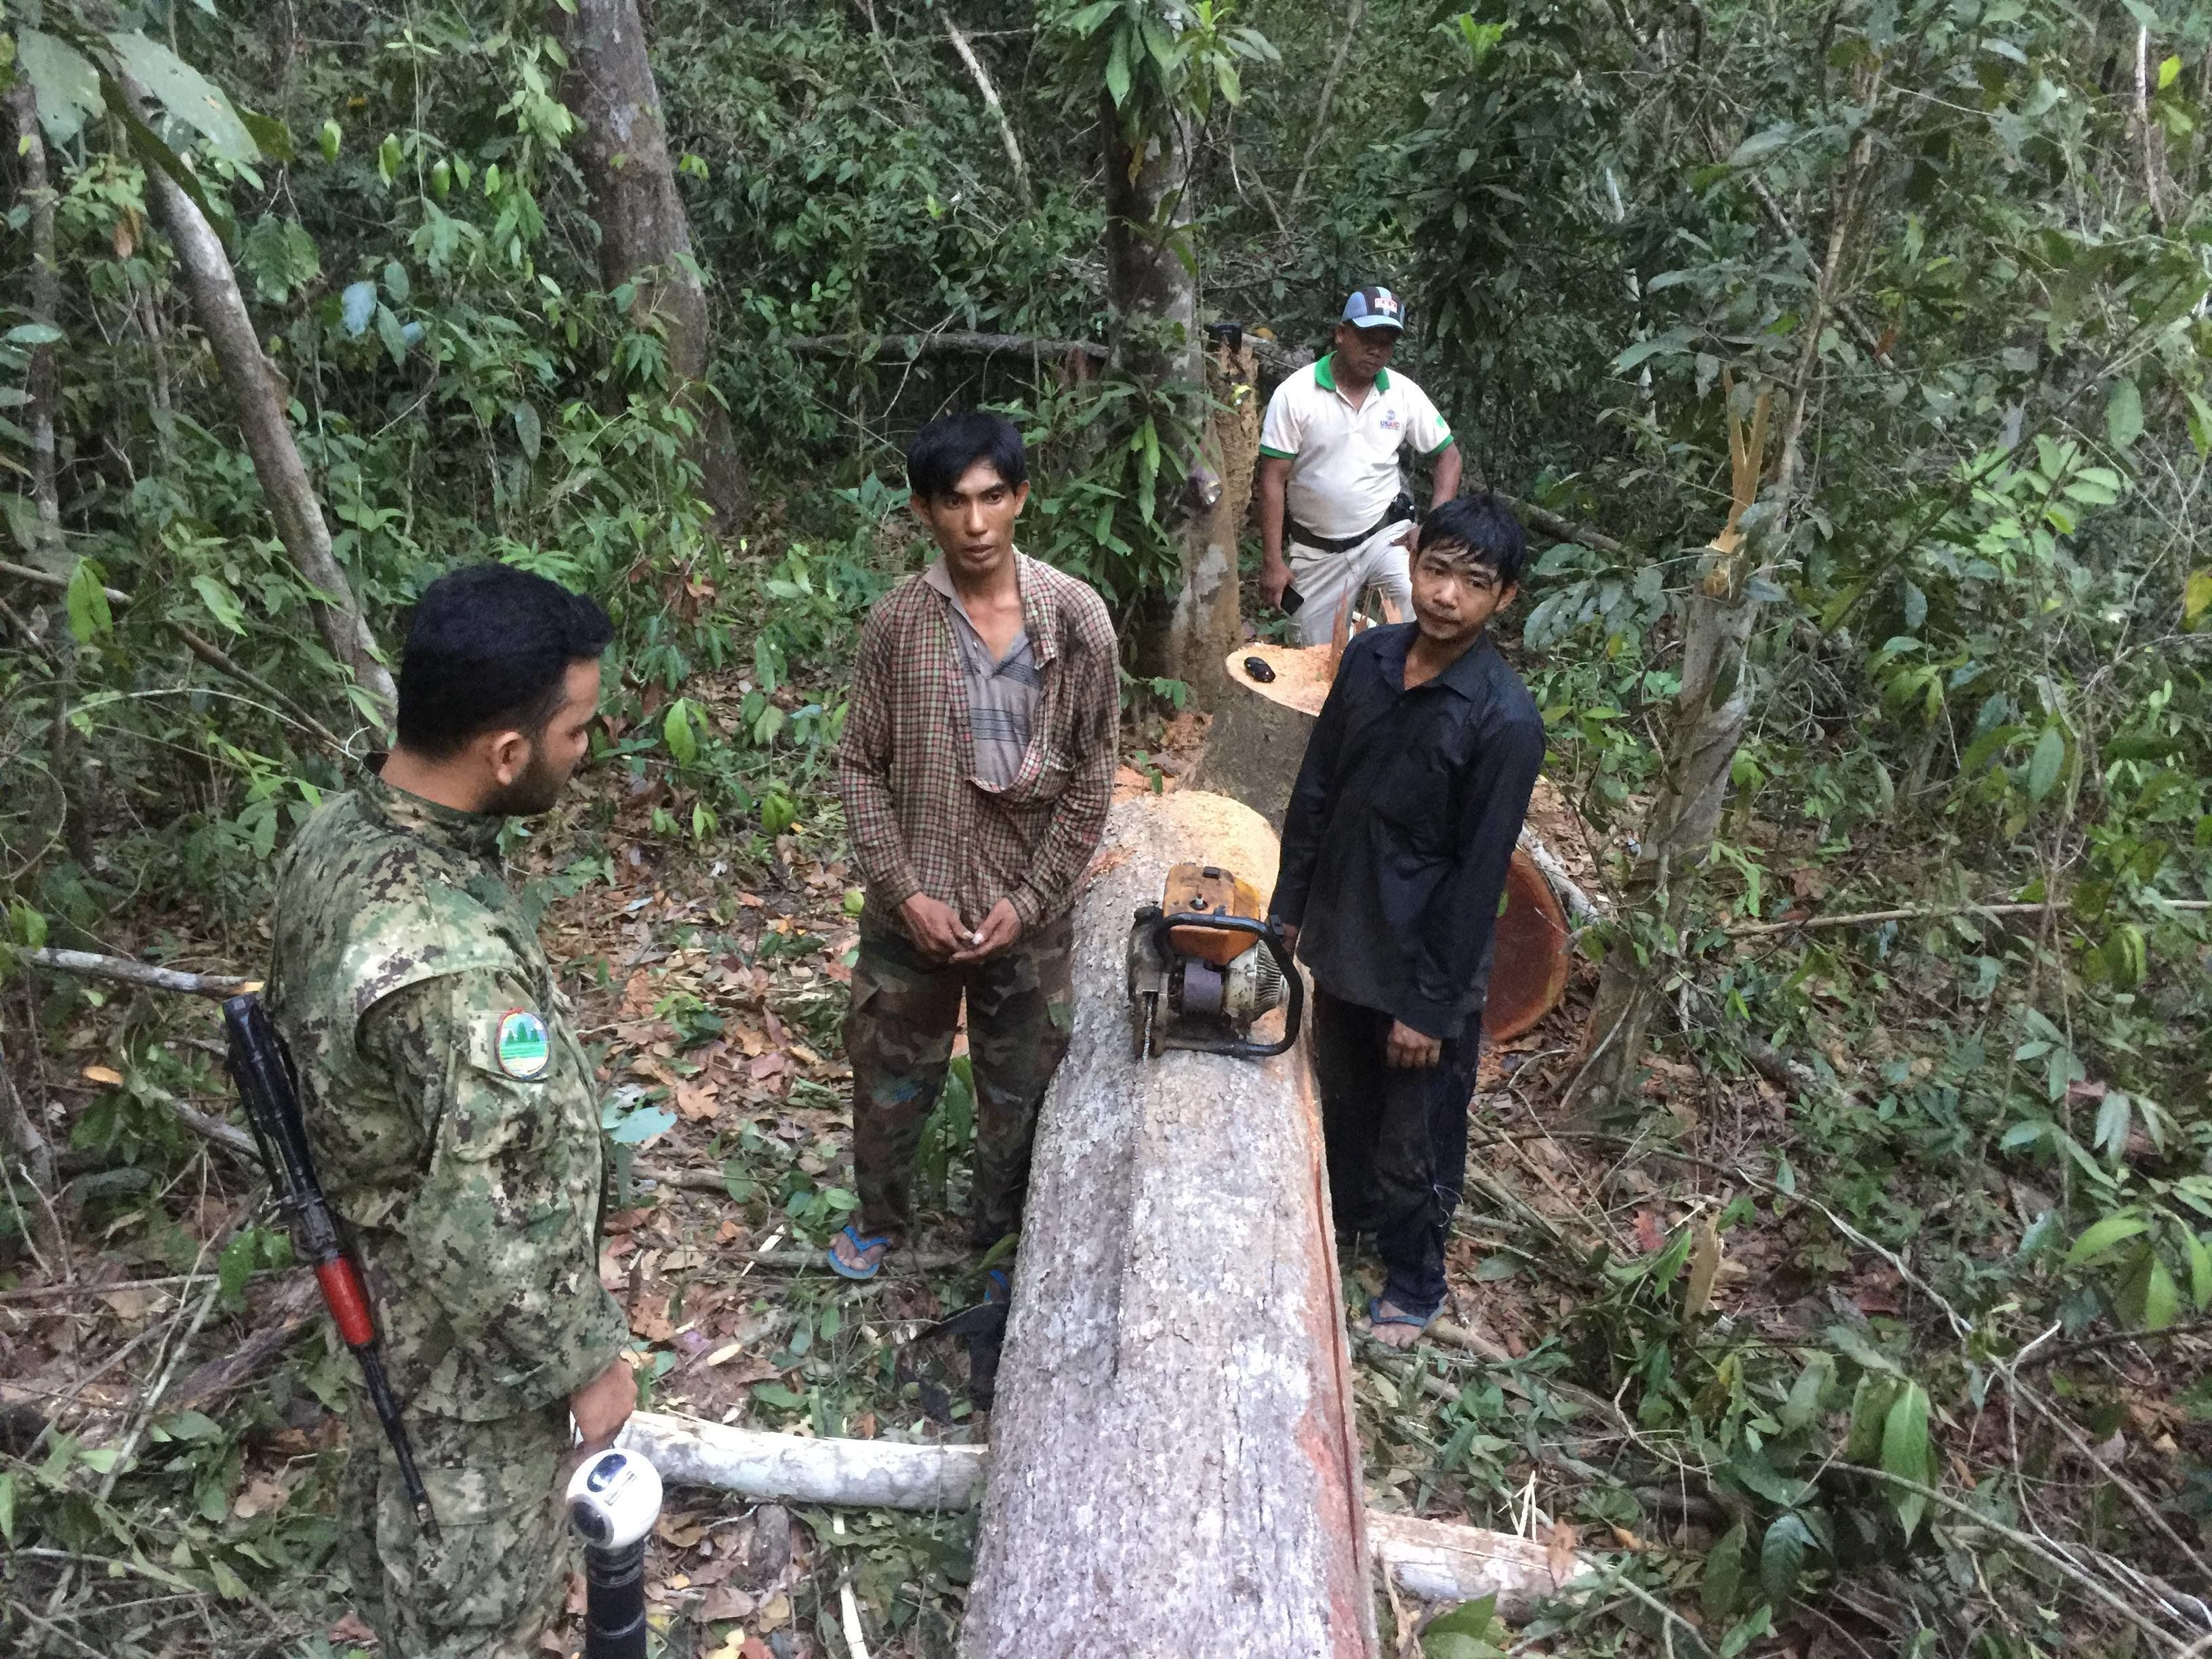 PLCN patrollers catch illegal loggers cutting down trees in the Prey Lang.